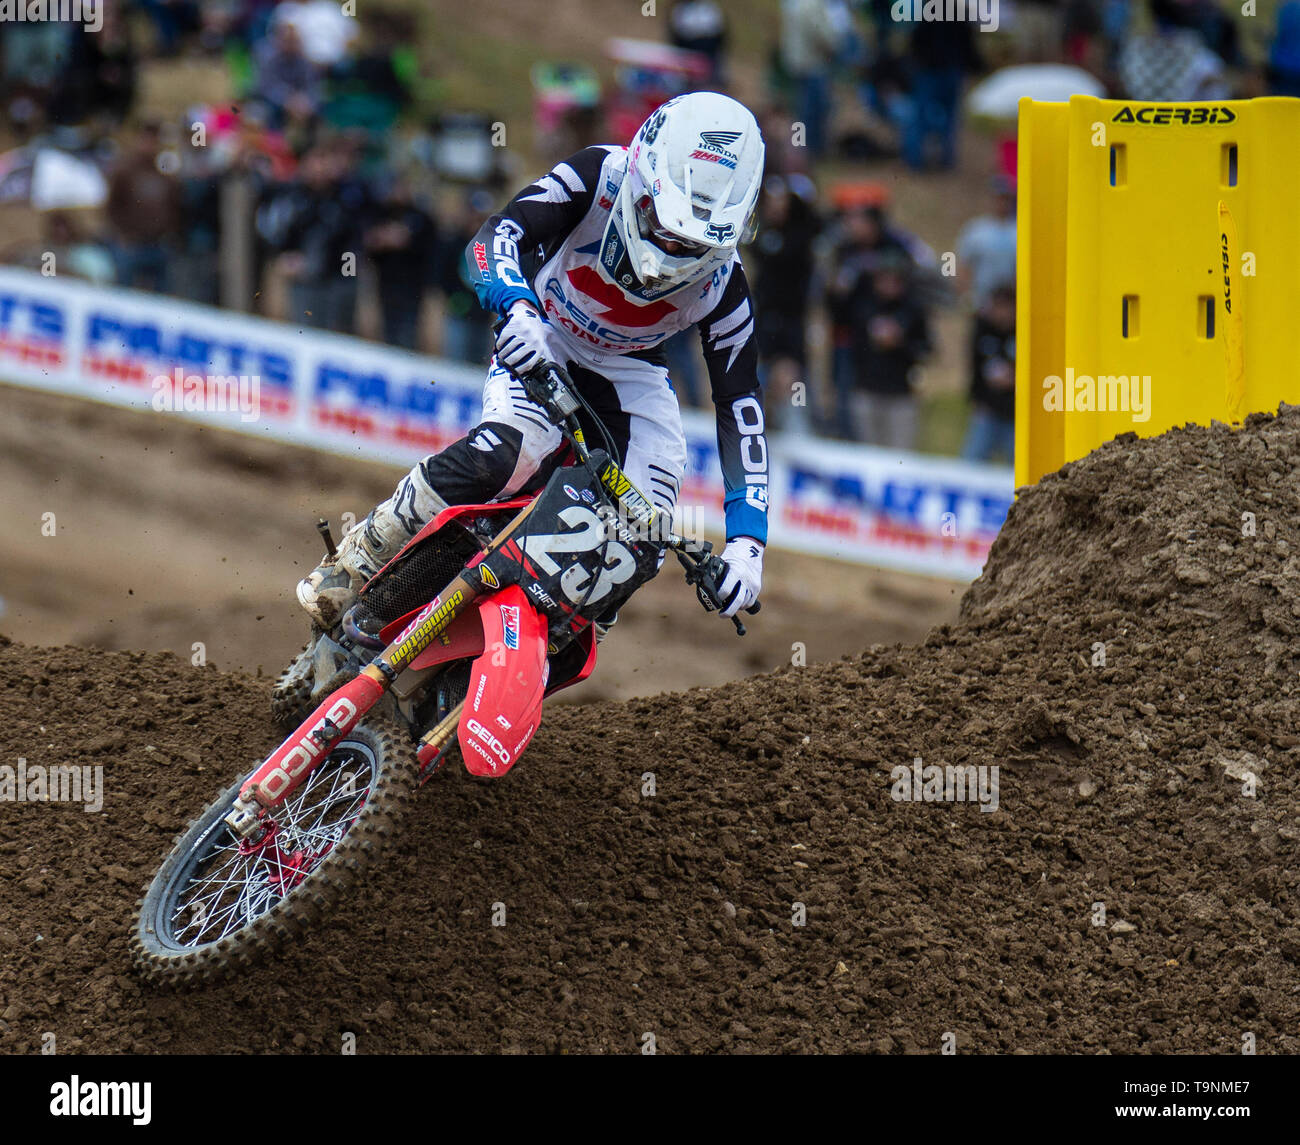 Rancho Cordova, CA U.S. 18th May, 2019. A. : # 23 Chase Sexton coming out of section 23 during the Lucas Oil Pro Motocross Championship 250 class moto # 1 at Hangtown Motocross Classic Rancho Cordova, CA Thurman James/CSM/Alamy Live News - Stock Image